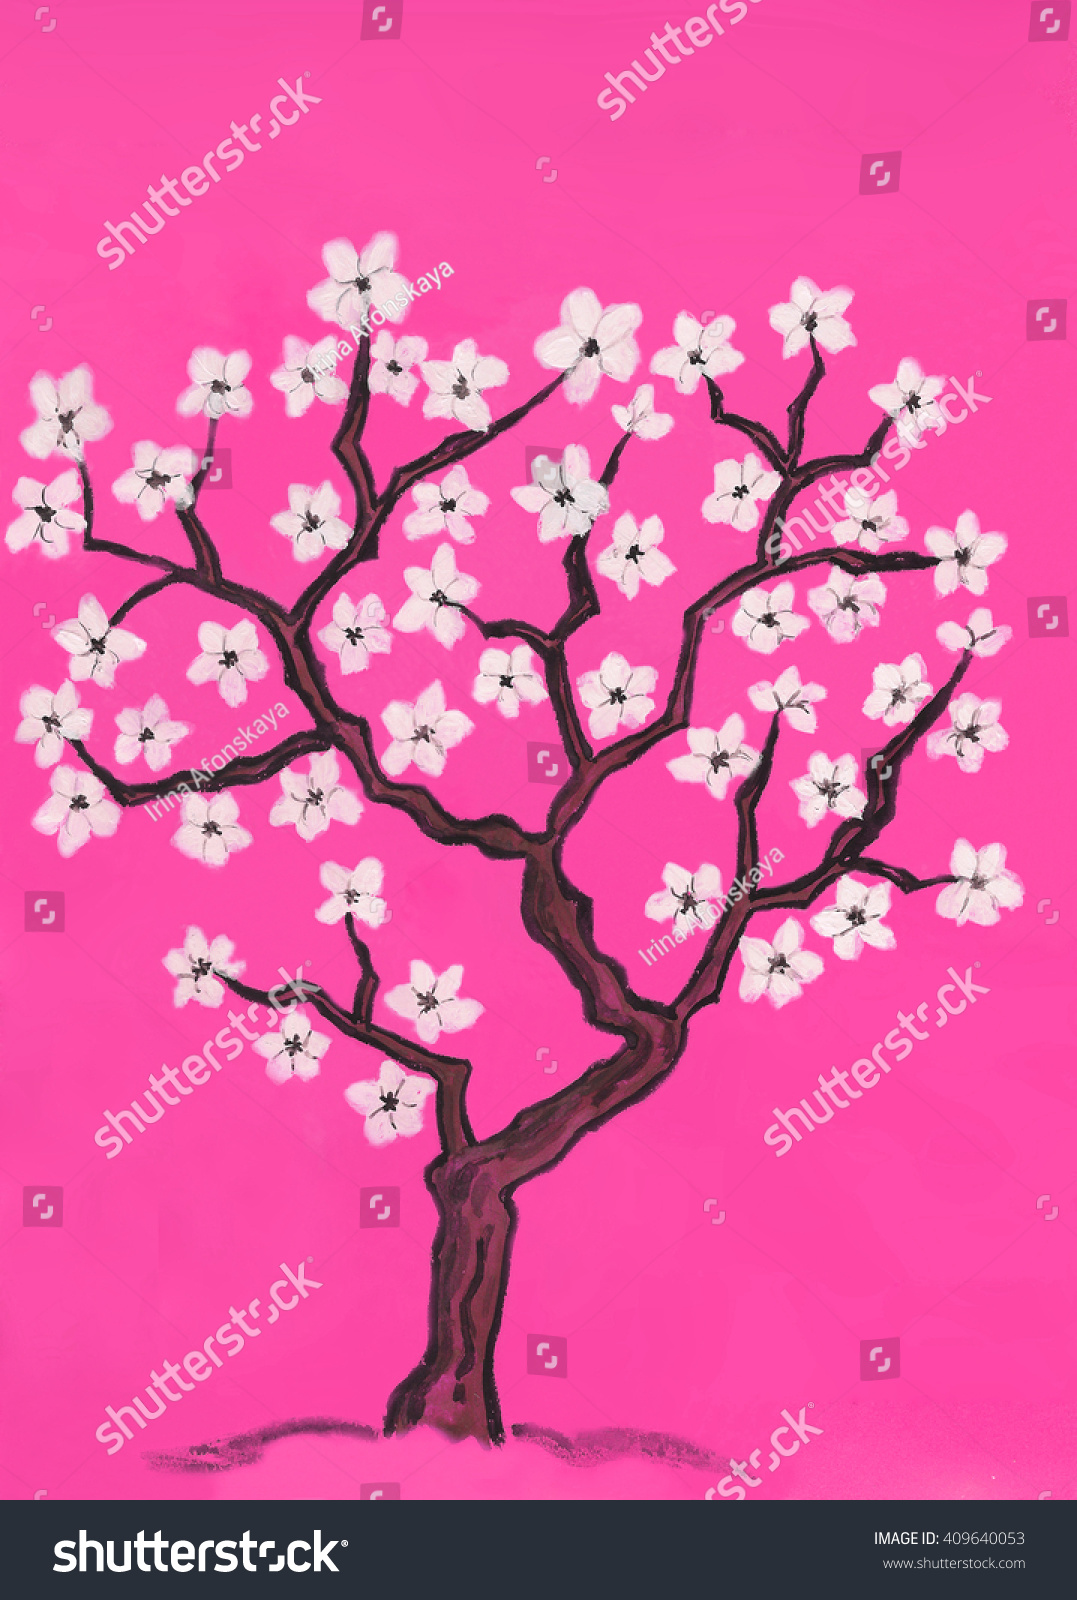 Hand Painted Picture Spring Tree In Blossom With White Flowers In